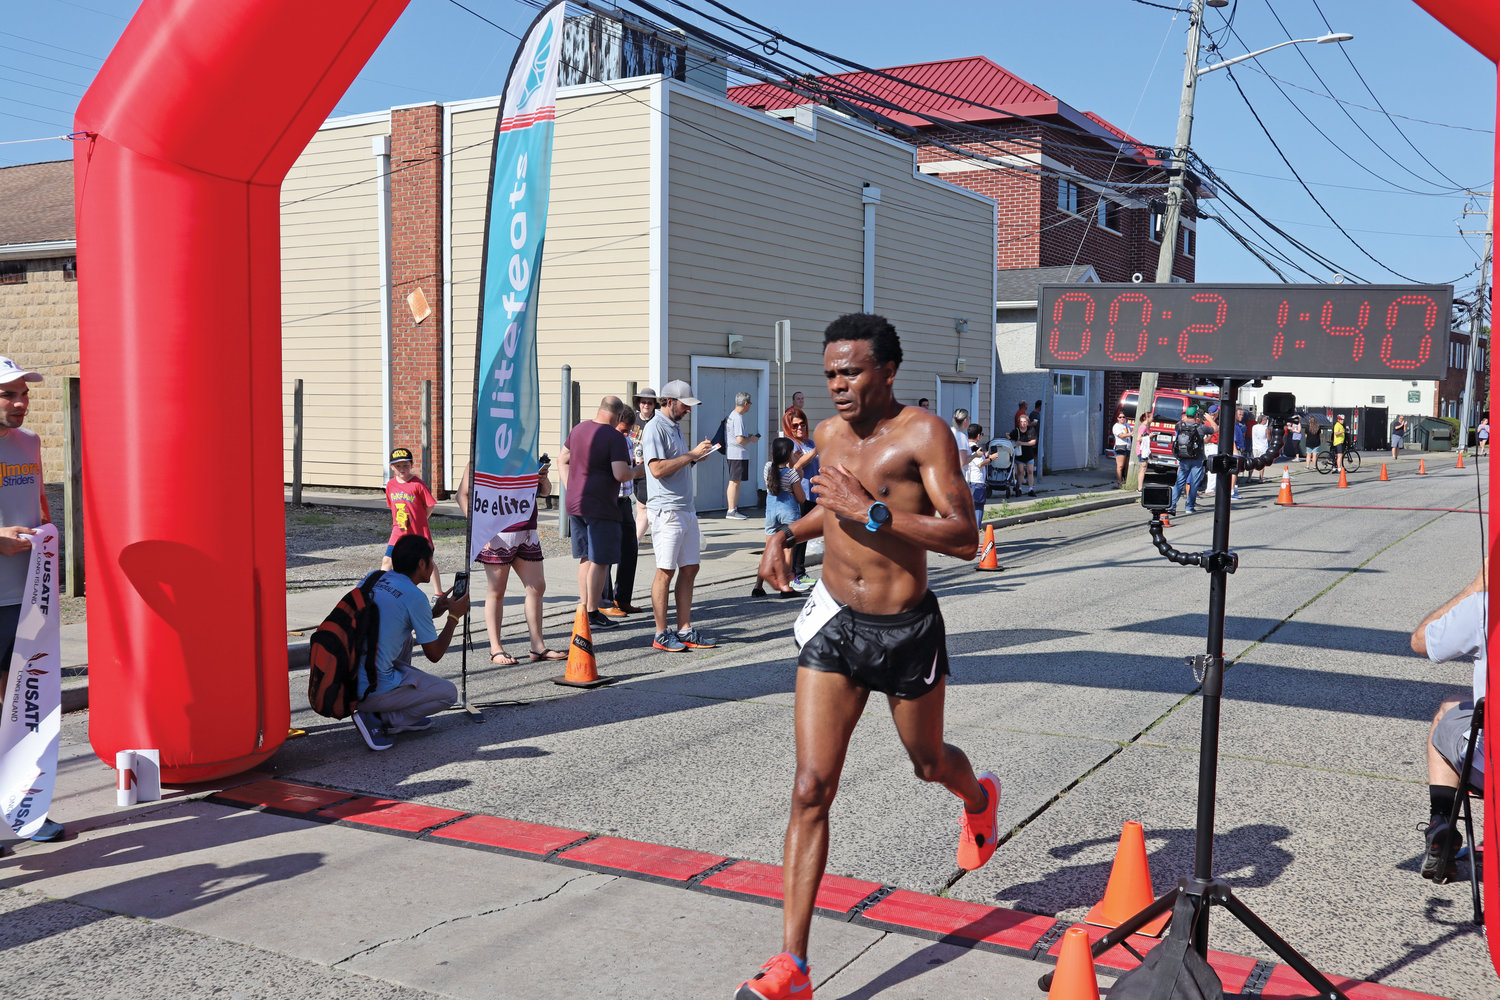 Male Masters first place winner Boyd Carrington, of Amityville, crossed the finish line.